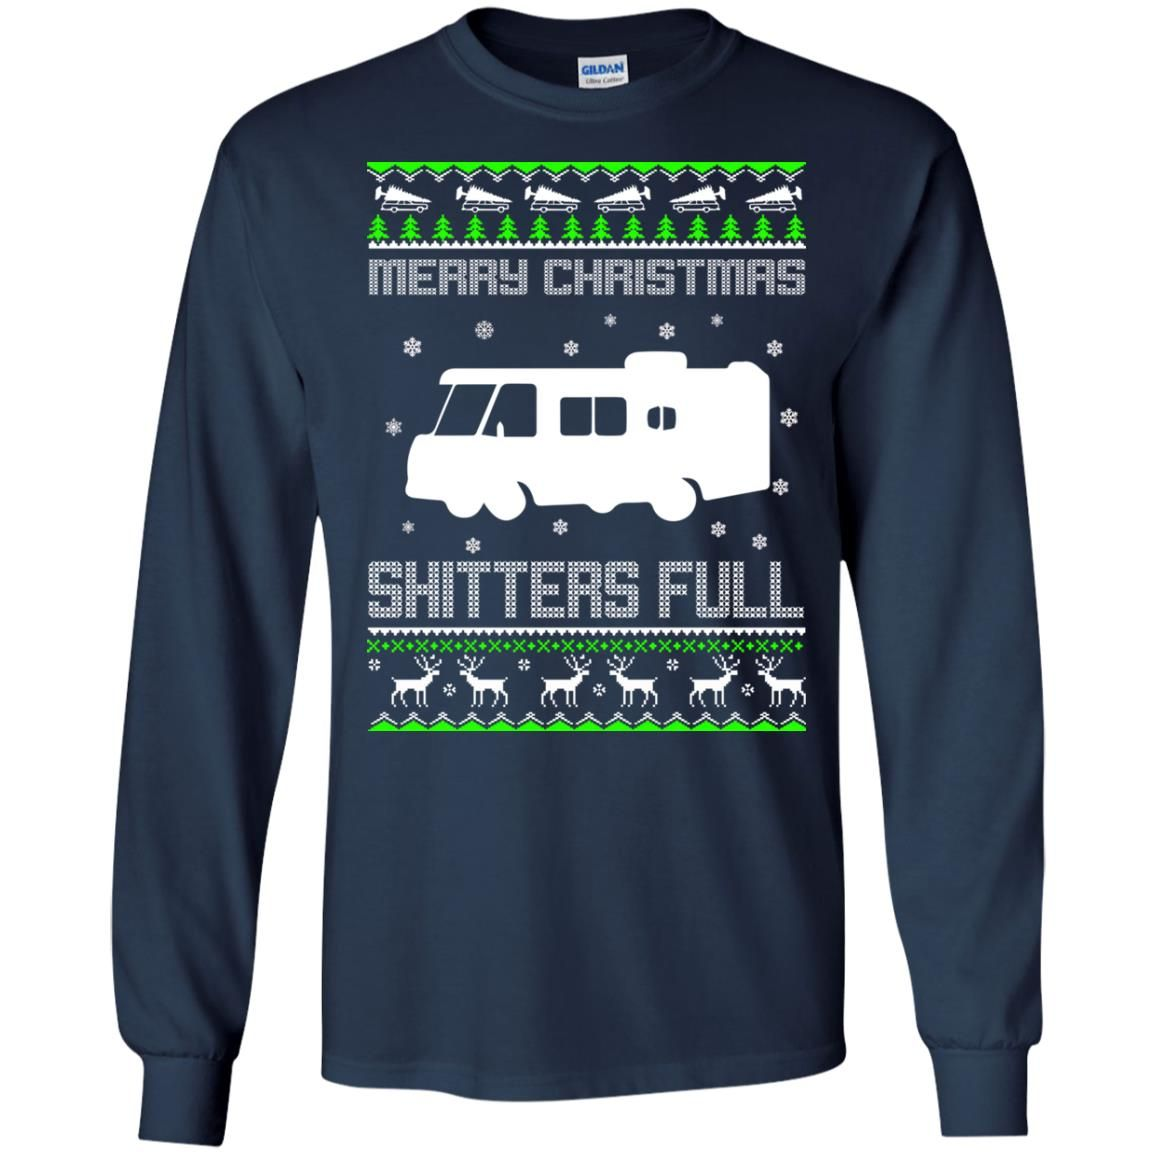 image 1567 - Christmas Vacation: Merry Christmas Shitter's full ugly sweater, hoodie